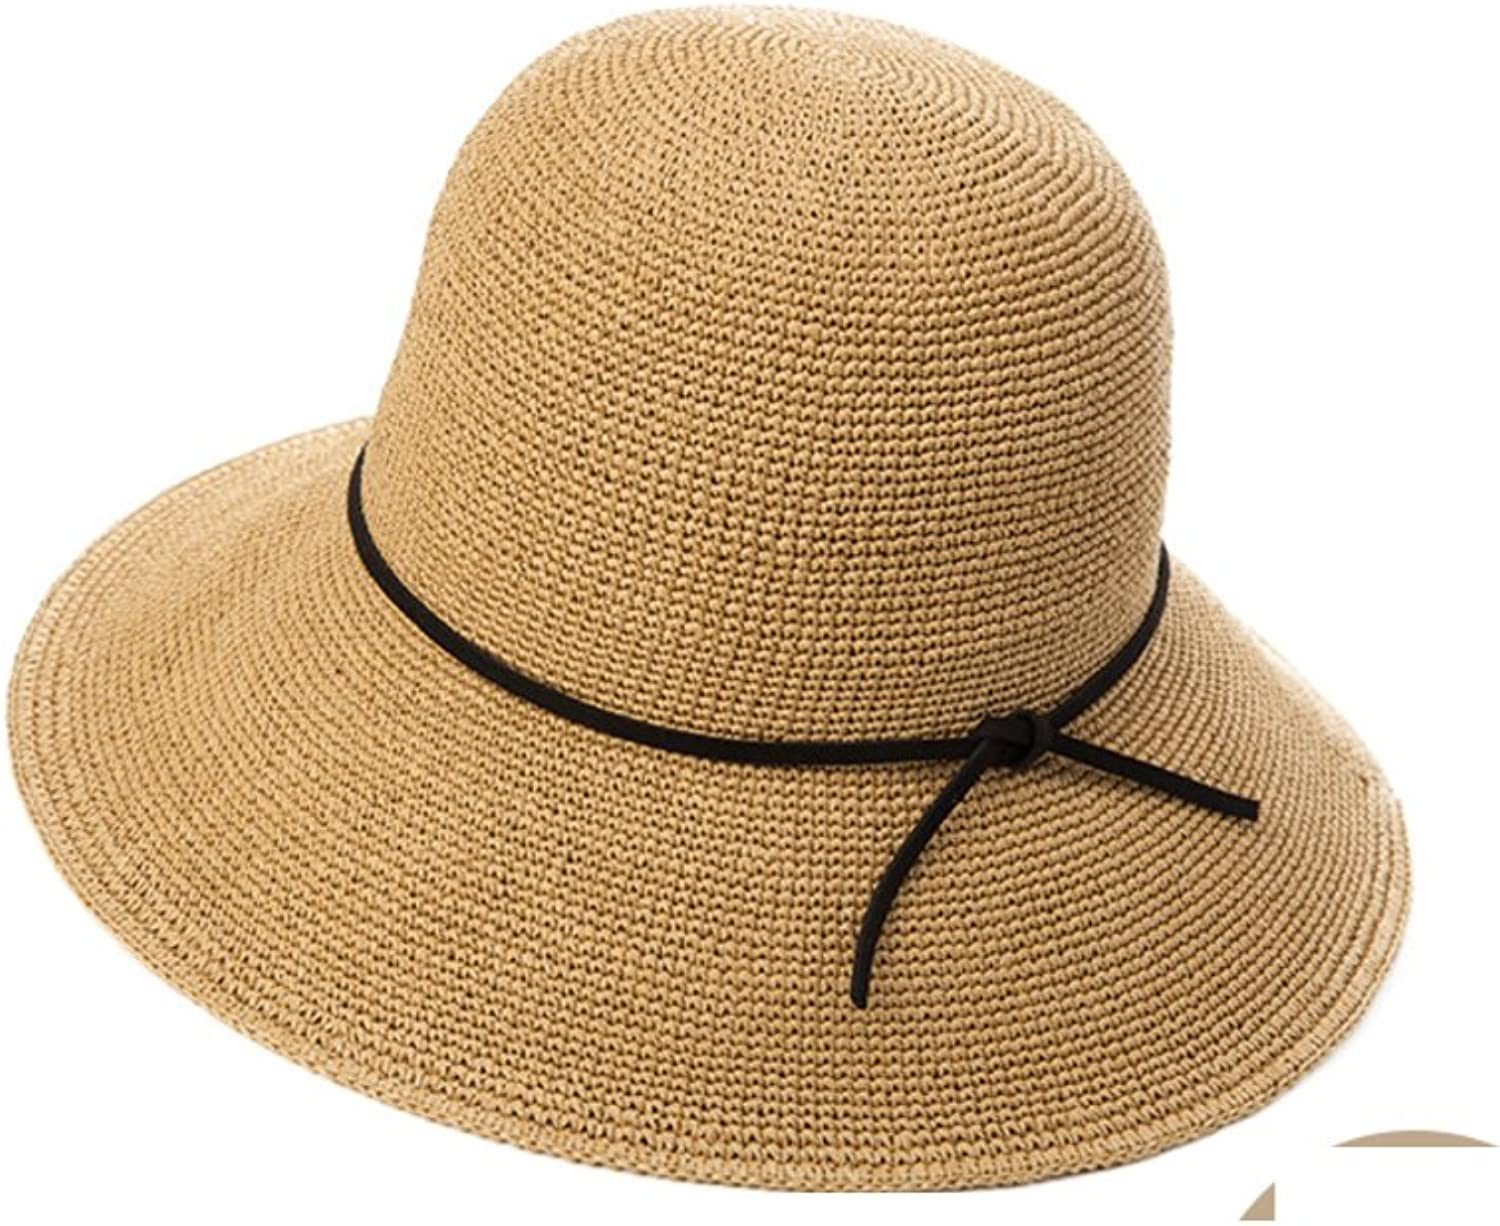 Sadahsdhjkh Womens Visor Straw Hat Collapsible,Large Along,Sun Hat Beach Hats